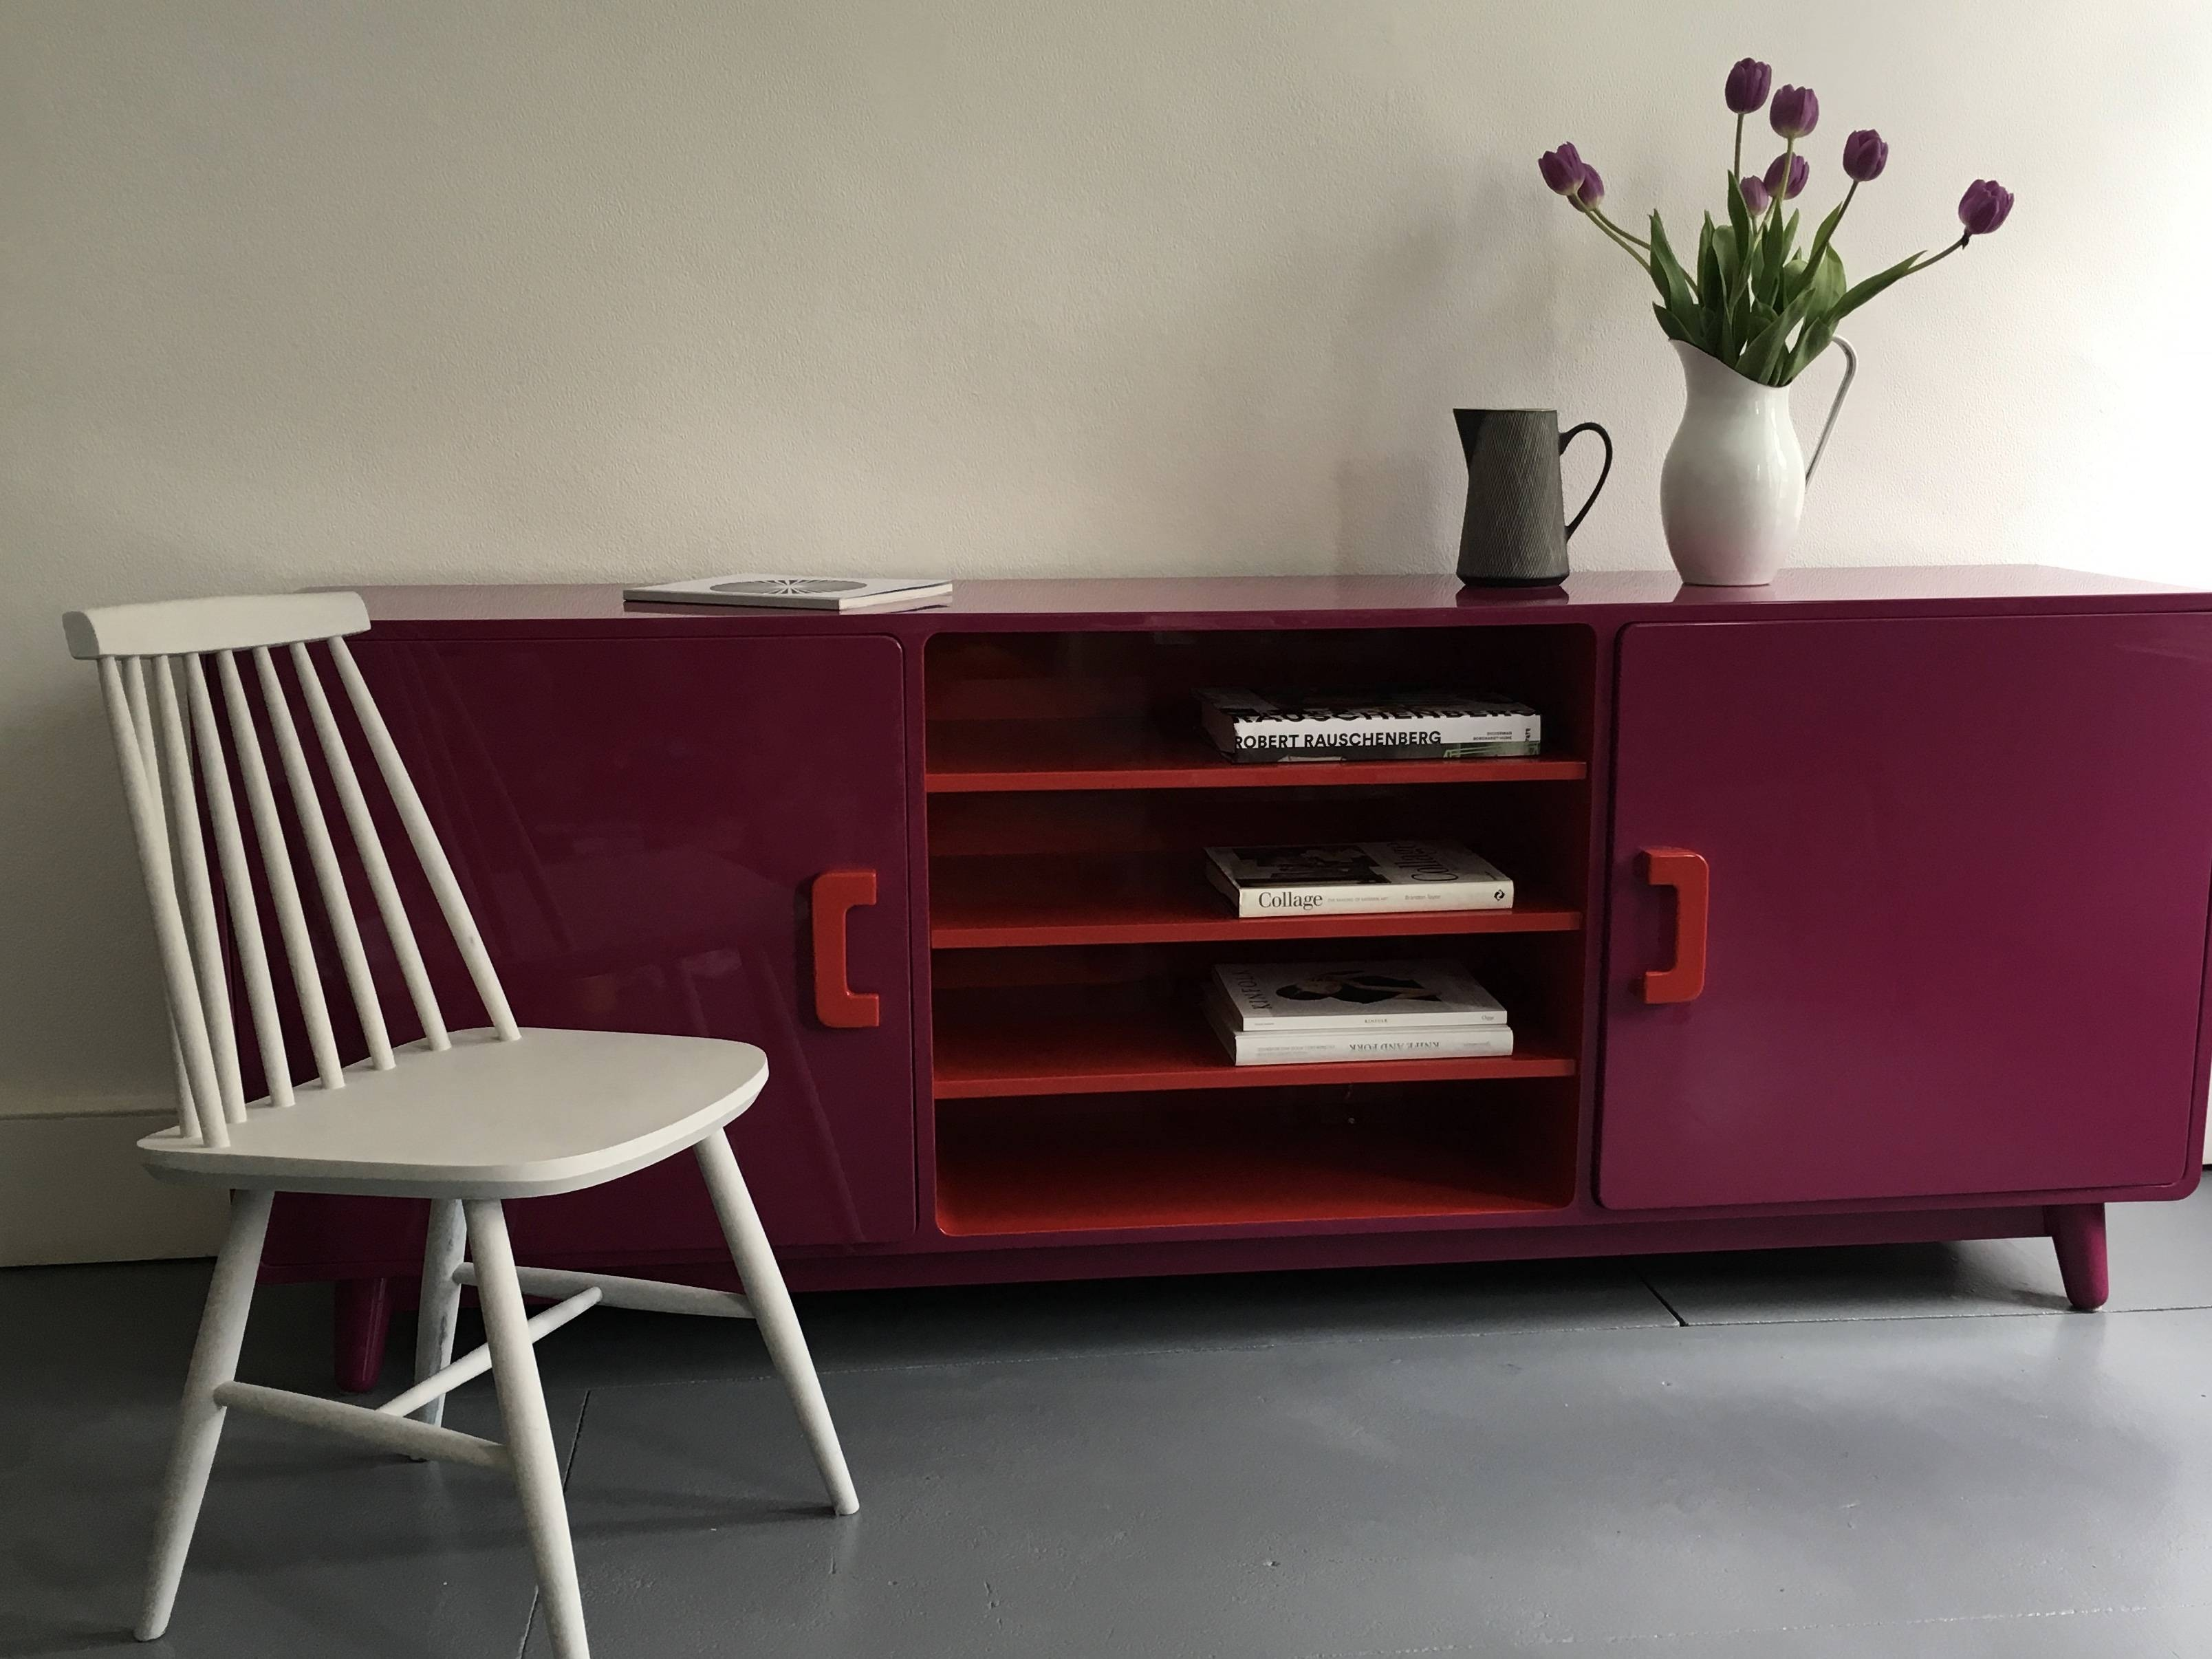 Inspiration about 60's Inspired High Gloss Lacquered Sideboard In Hot Pink And Red For Red High Gloss Sideboards (#15 of 15)